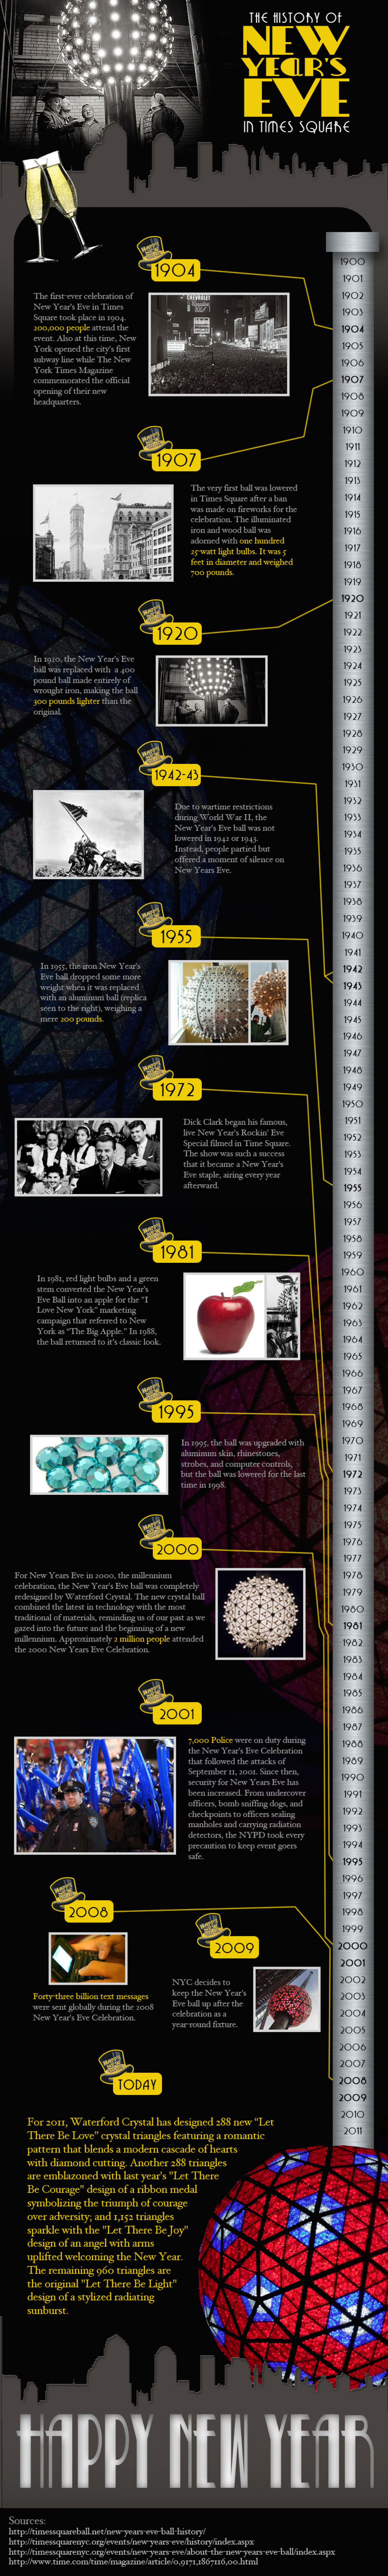 The History of New Year's Eve in Times Square Infographic